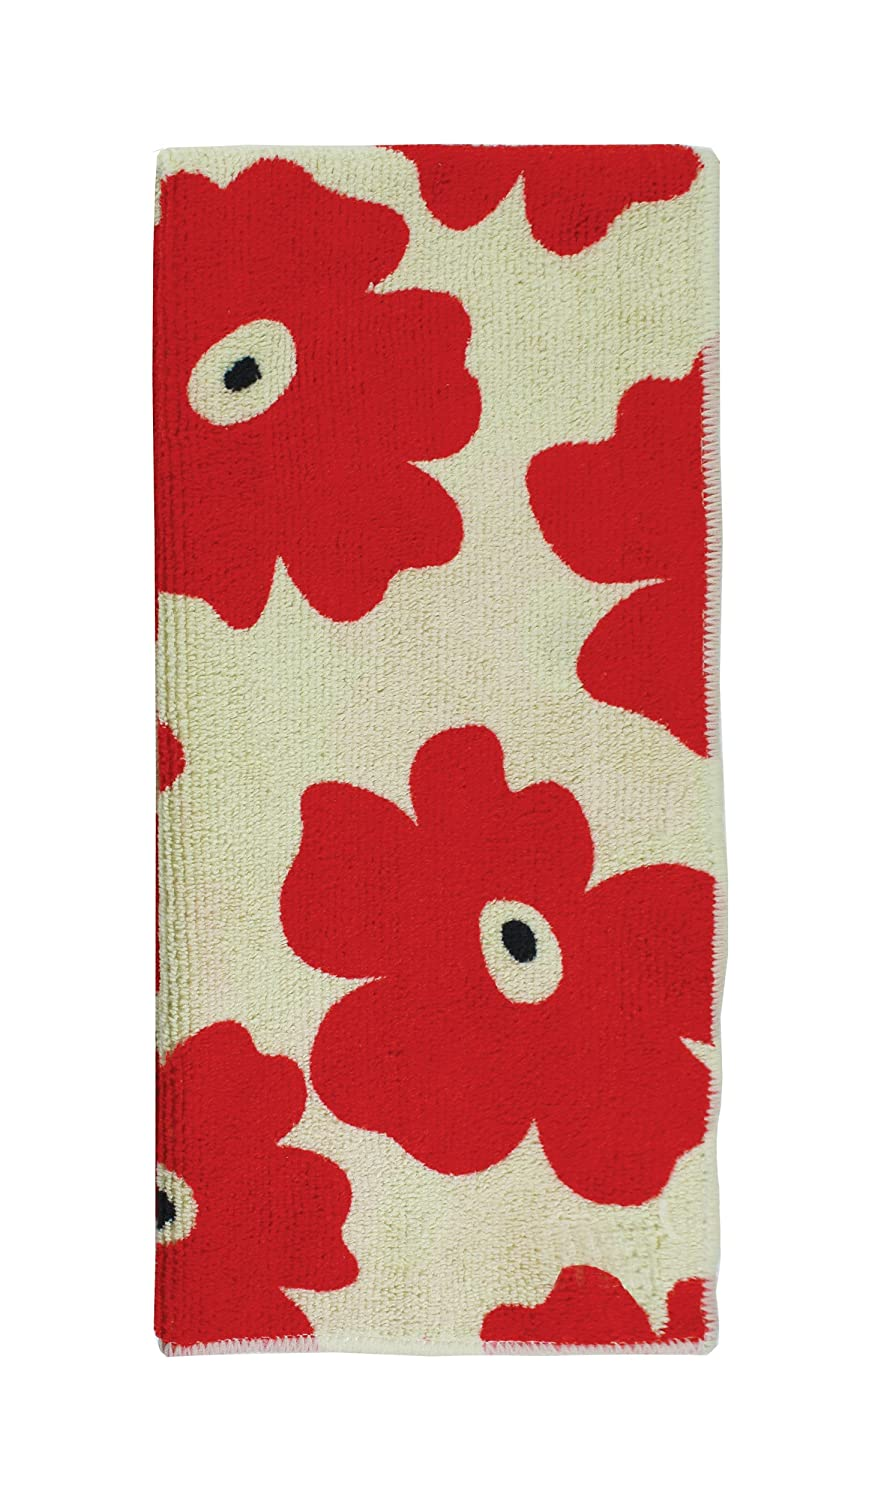 MUkitchen Microfiber Dishtowel, 16 by 24-Inches, Red Poppy